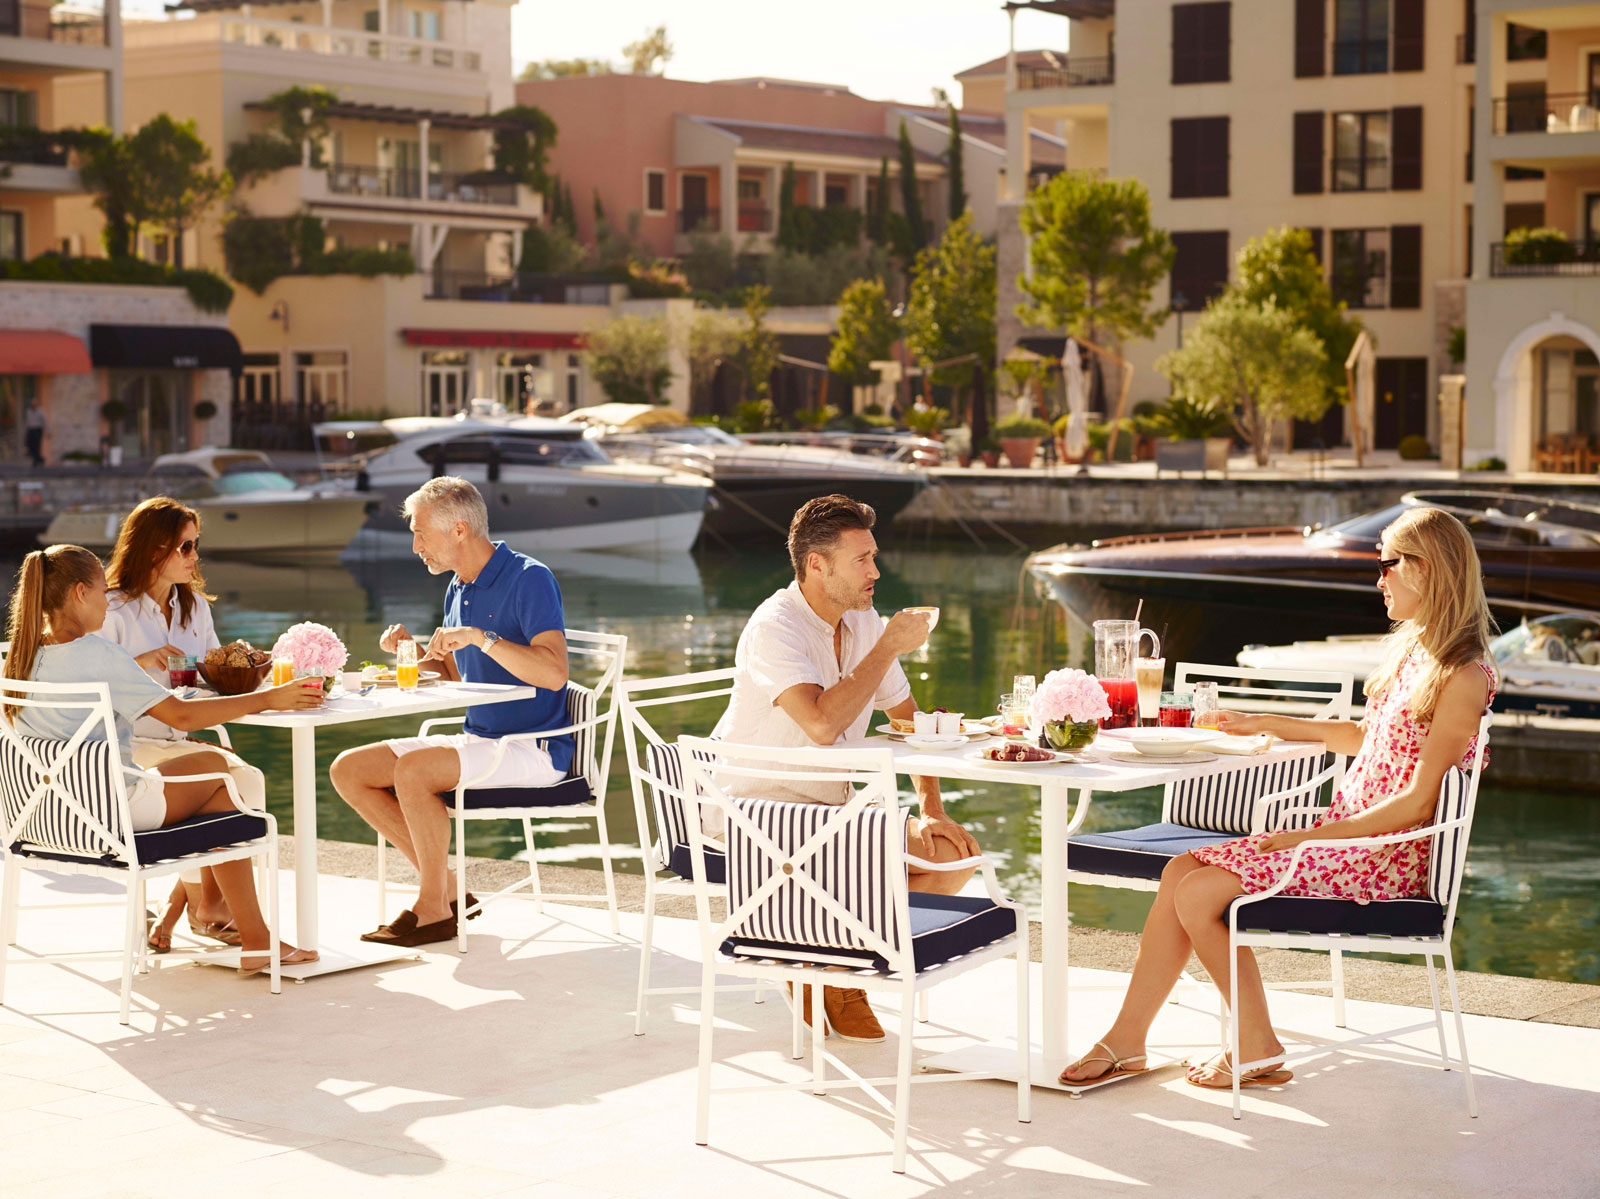 Porto Montenegro Yacht Club Pool Joins The Ranks Of The World's Best 8